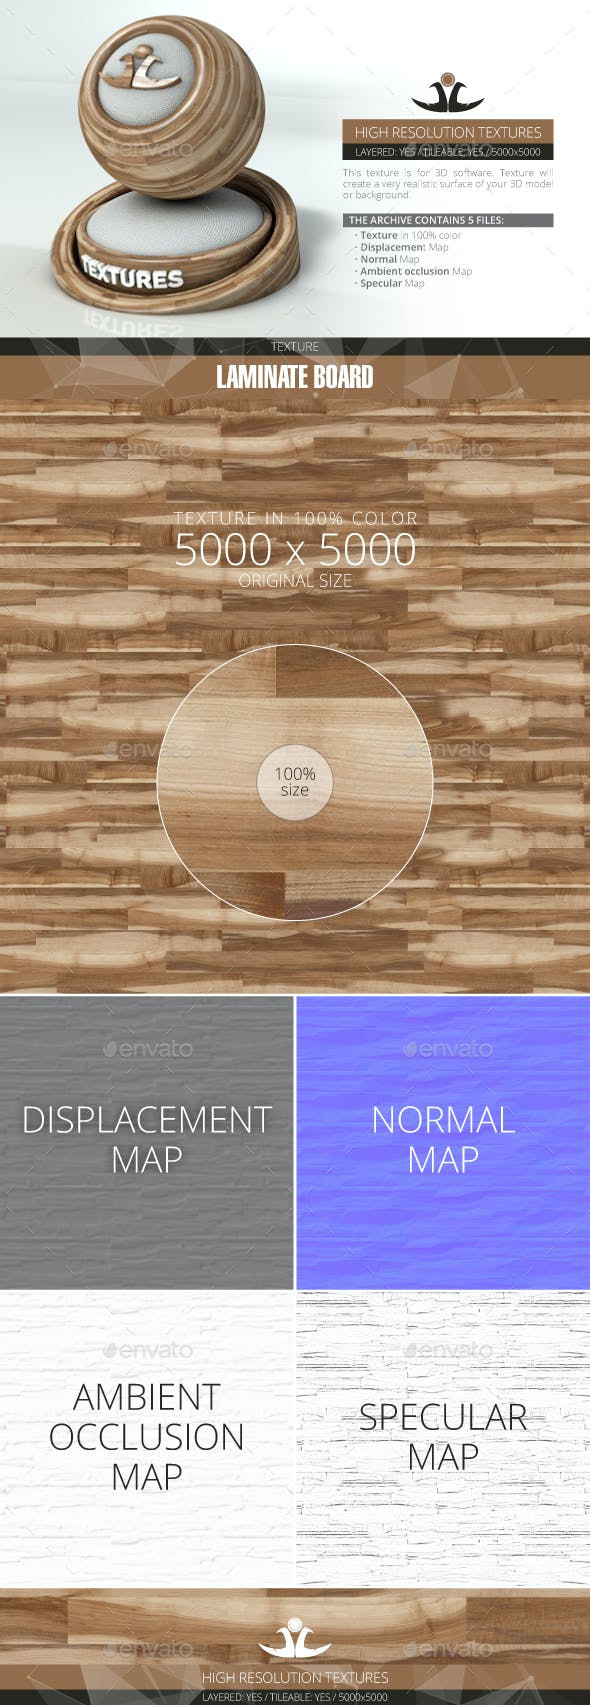 Laminate Board 76 - 3DOcean Item for Sale